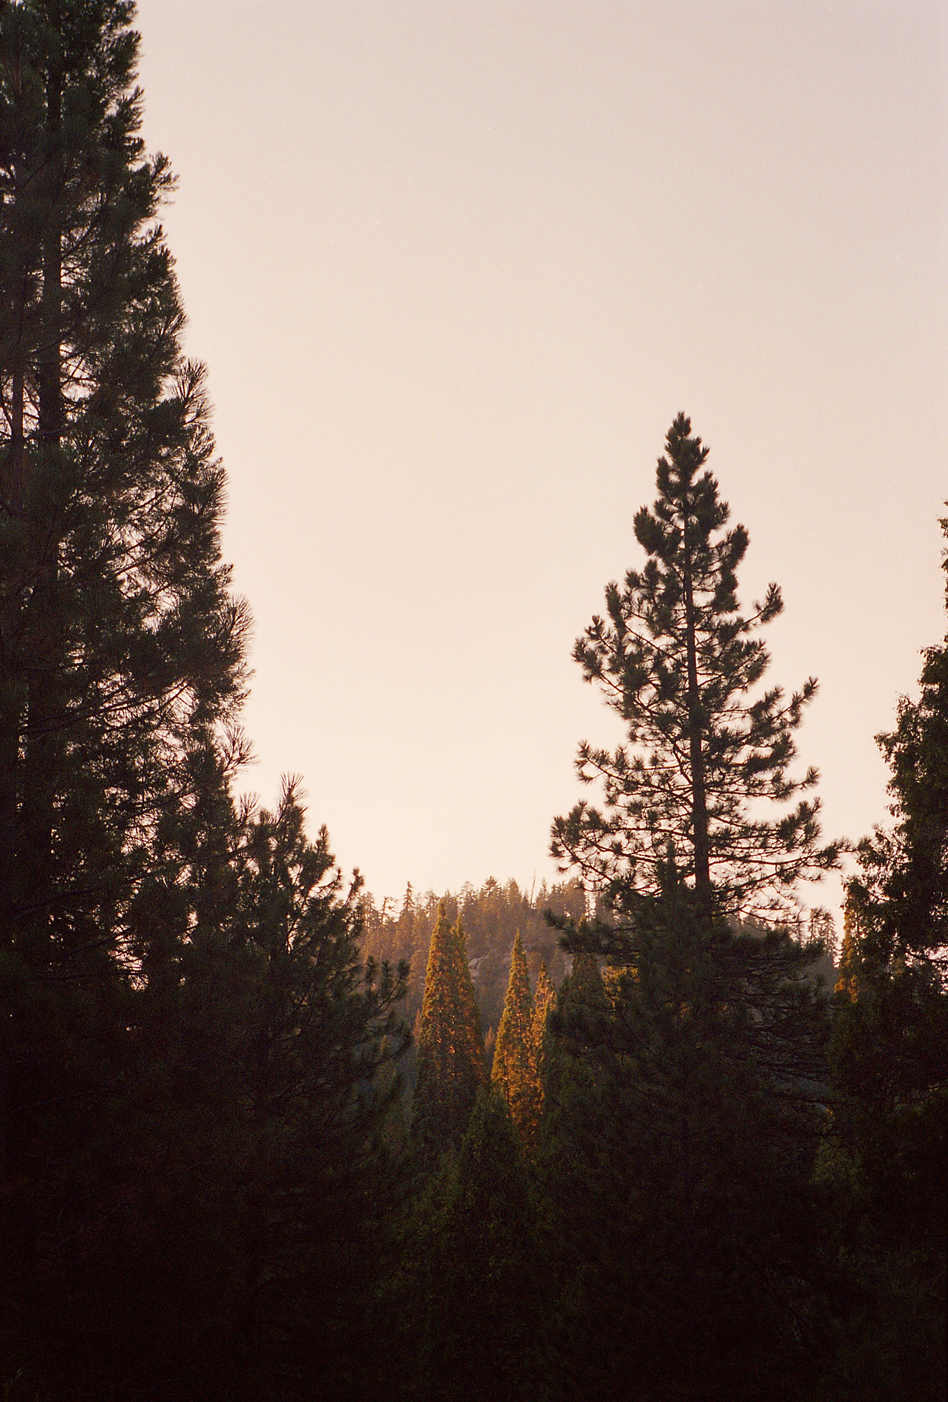 10.29.13-CA_kings canyon trees.jpg